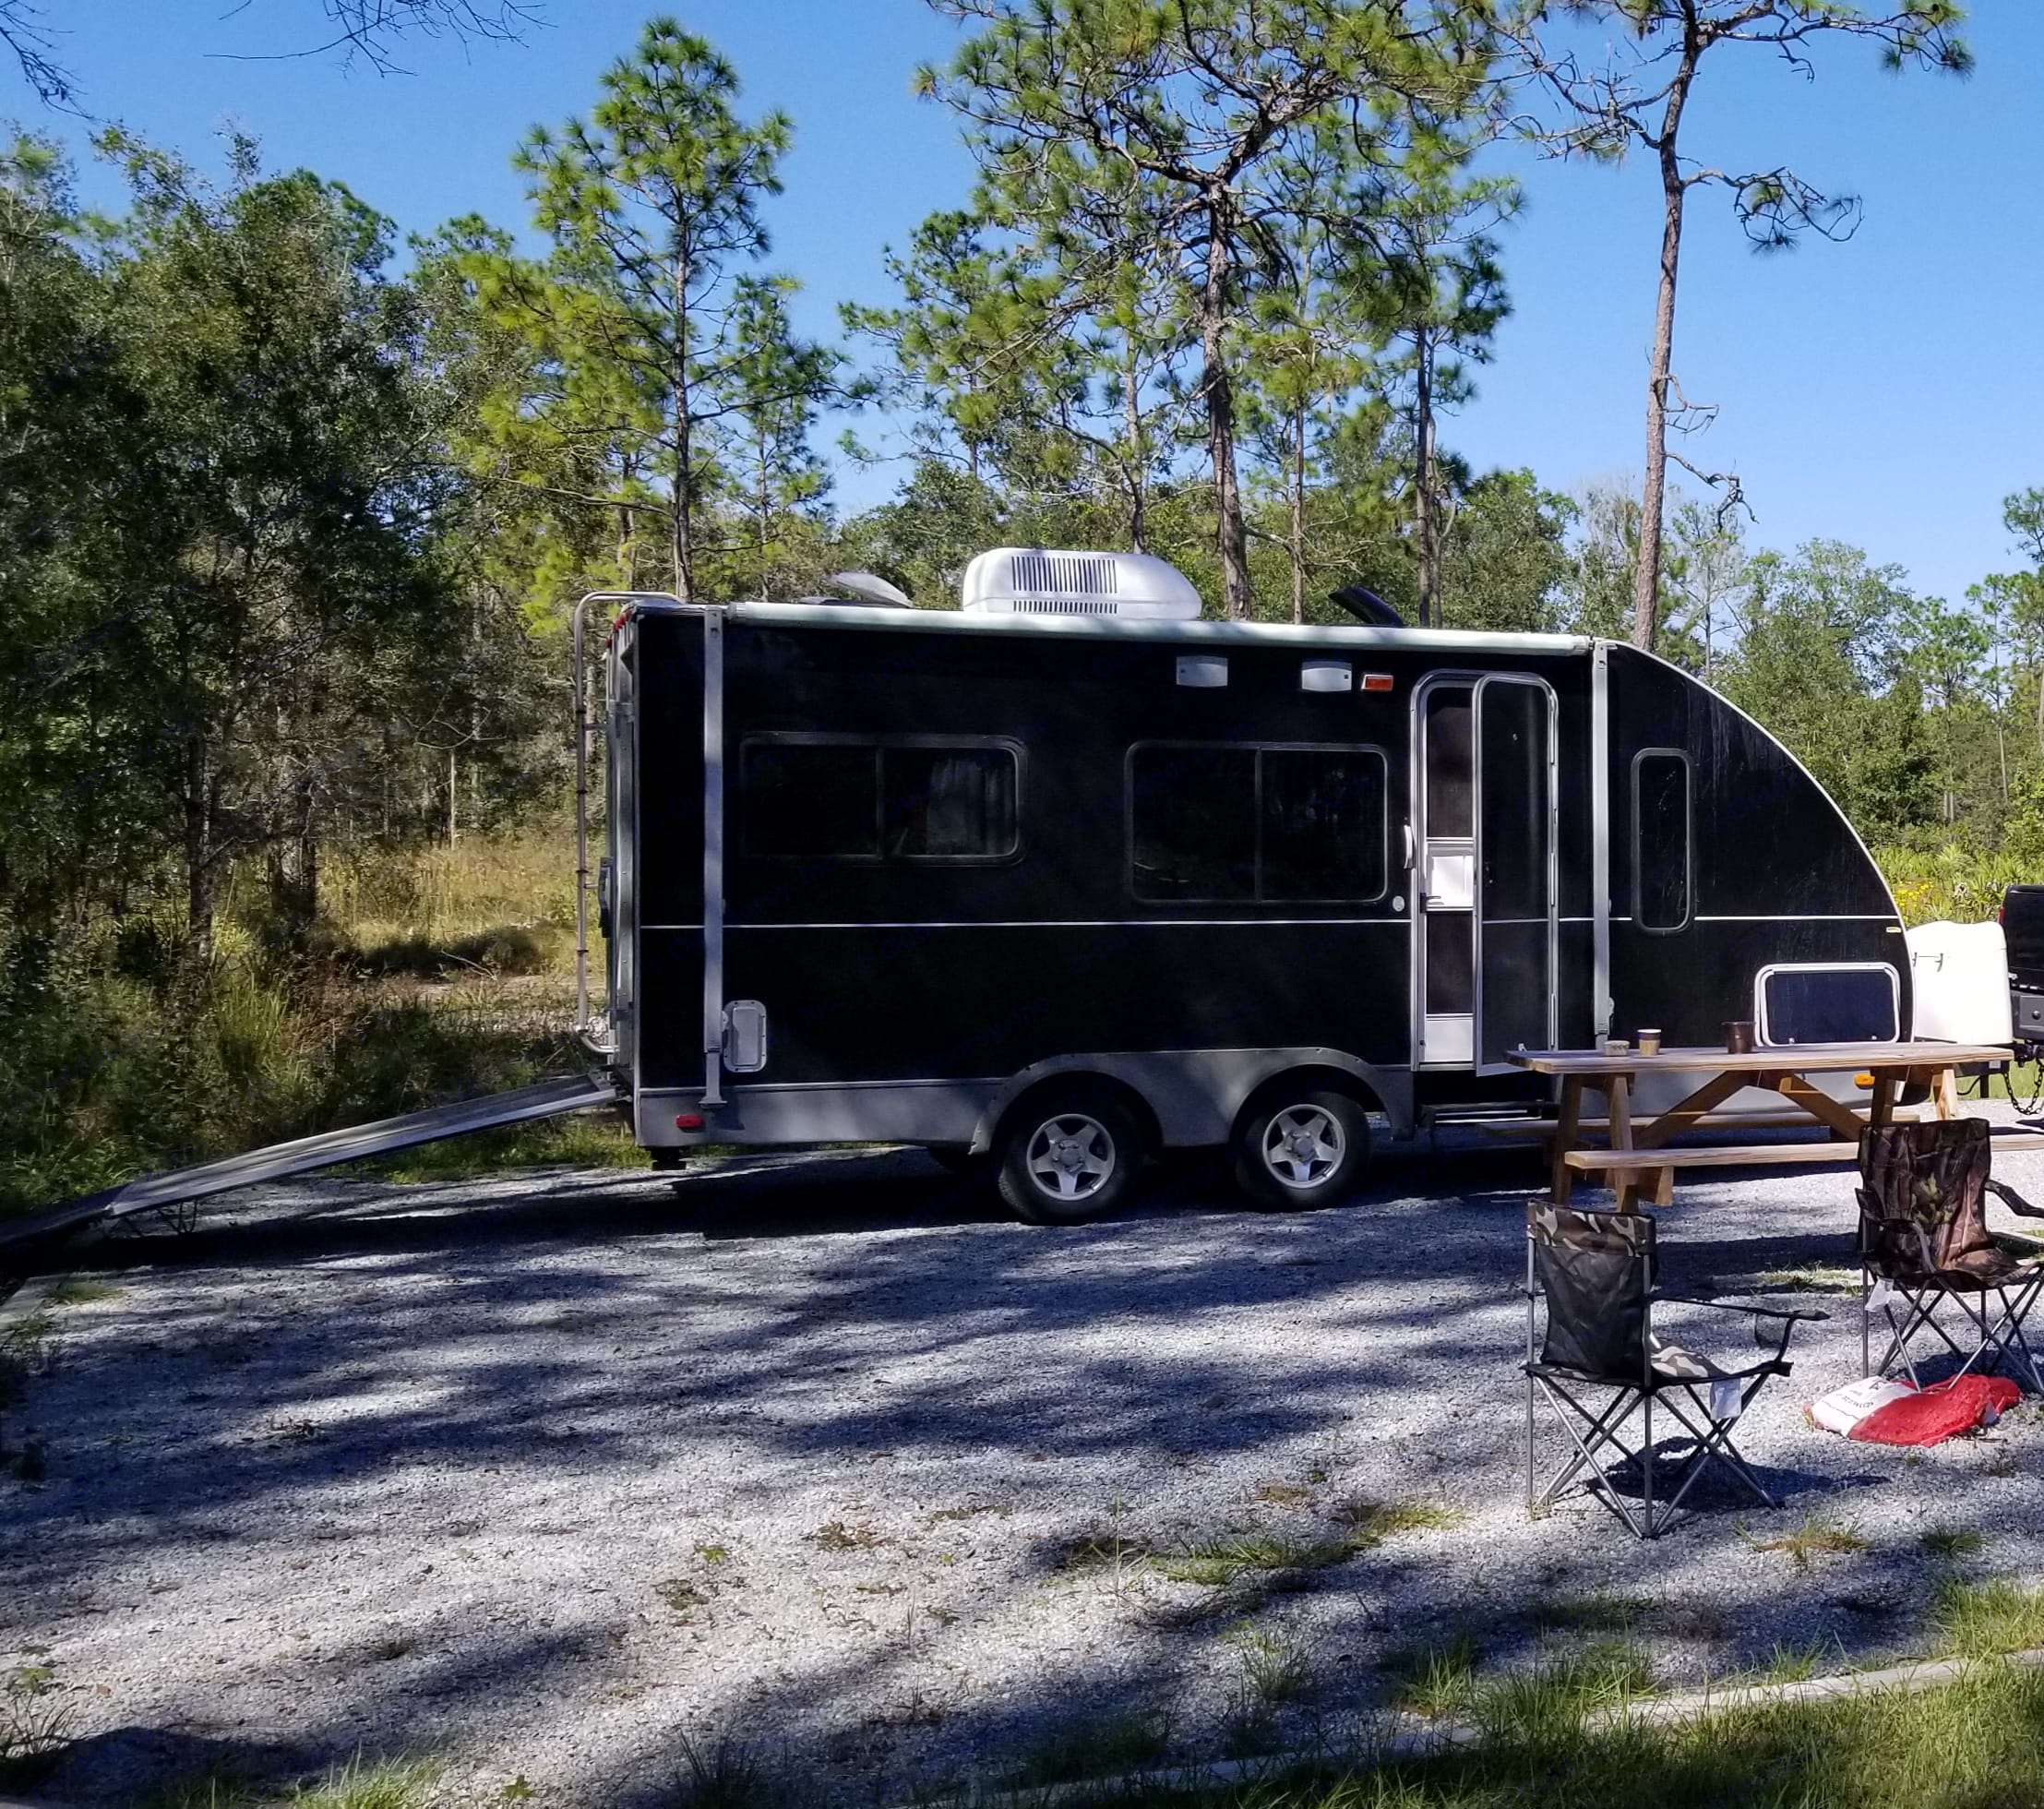 FUN AND EASY TO TOW TOY HAULER - SLEEPS 4+.  TRAVEL FLORIDA IN STYLE AND COMFORT! CAMP ON THE BEACH OR IN FLORIDA'S BEAUTIFUL PARKS!. Keystone Hobbi 2007